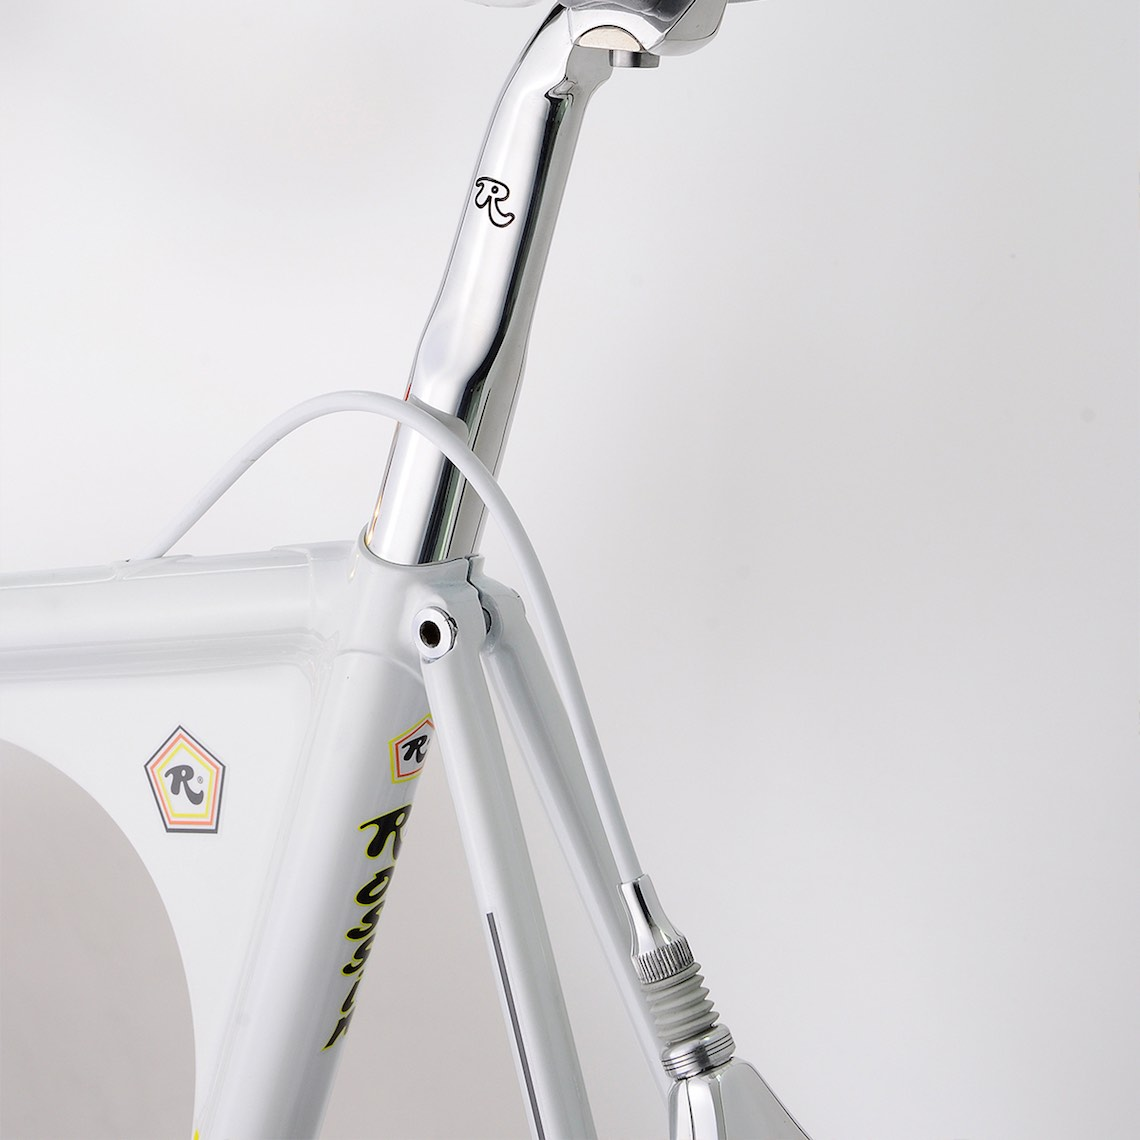 Rossin Futura CX4_Vintage_Luxury_Bicycle_7